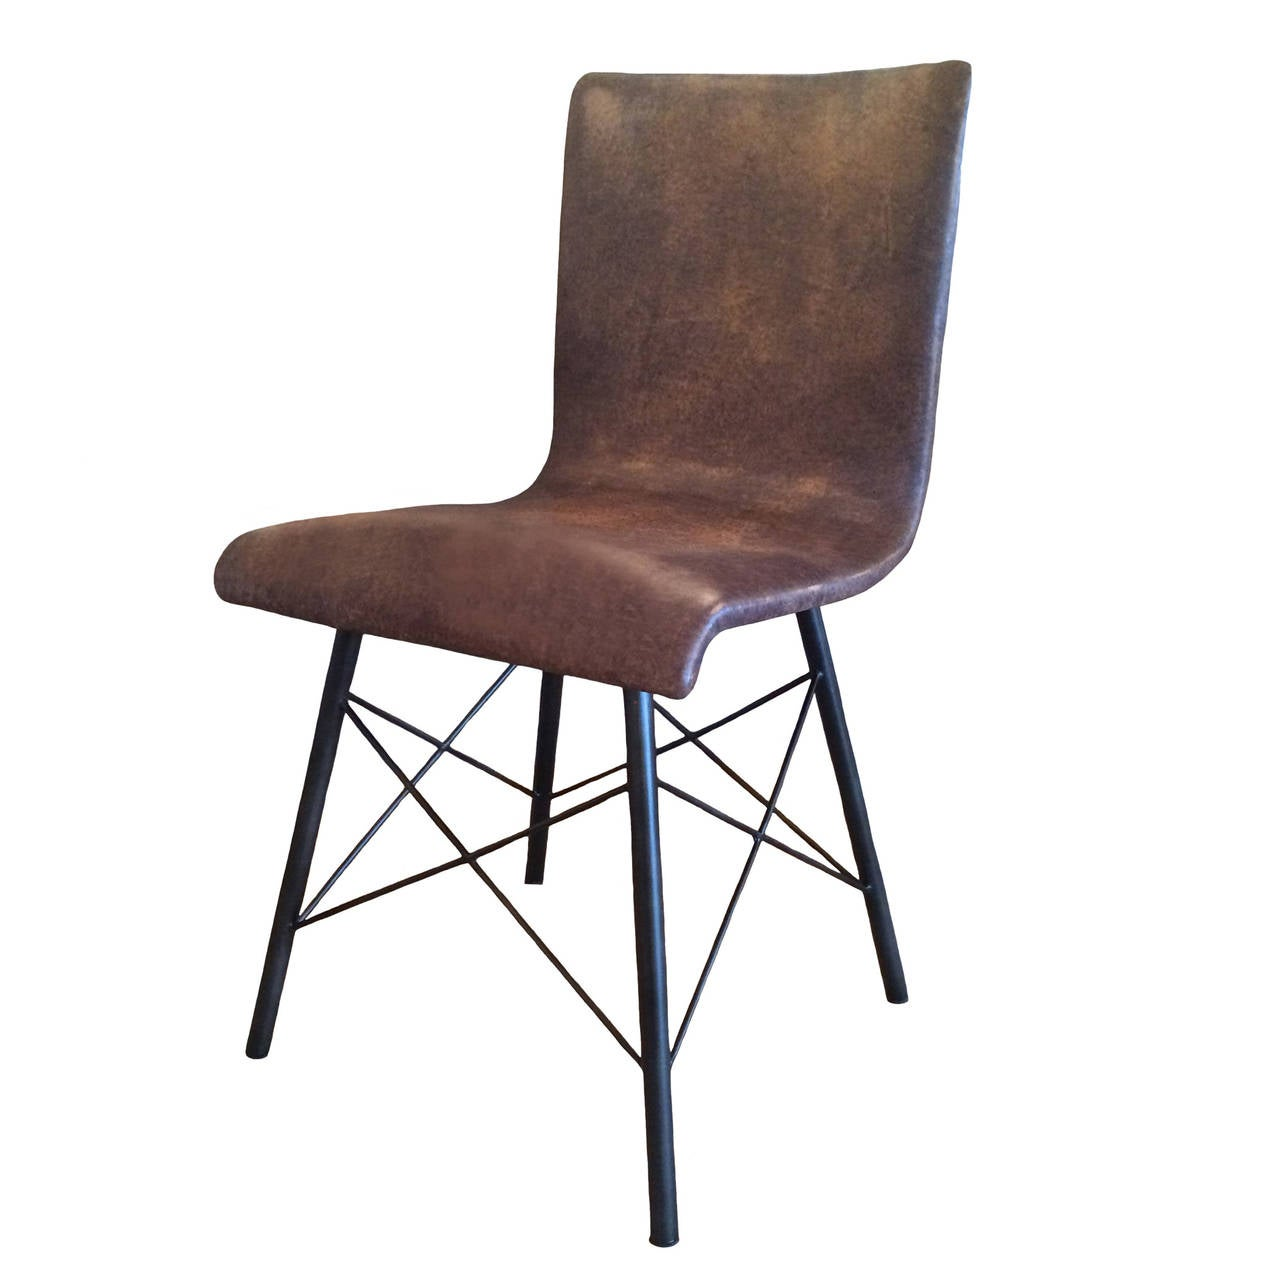 Mid-Century Modern Style Chairs For Sale At 1stdibs